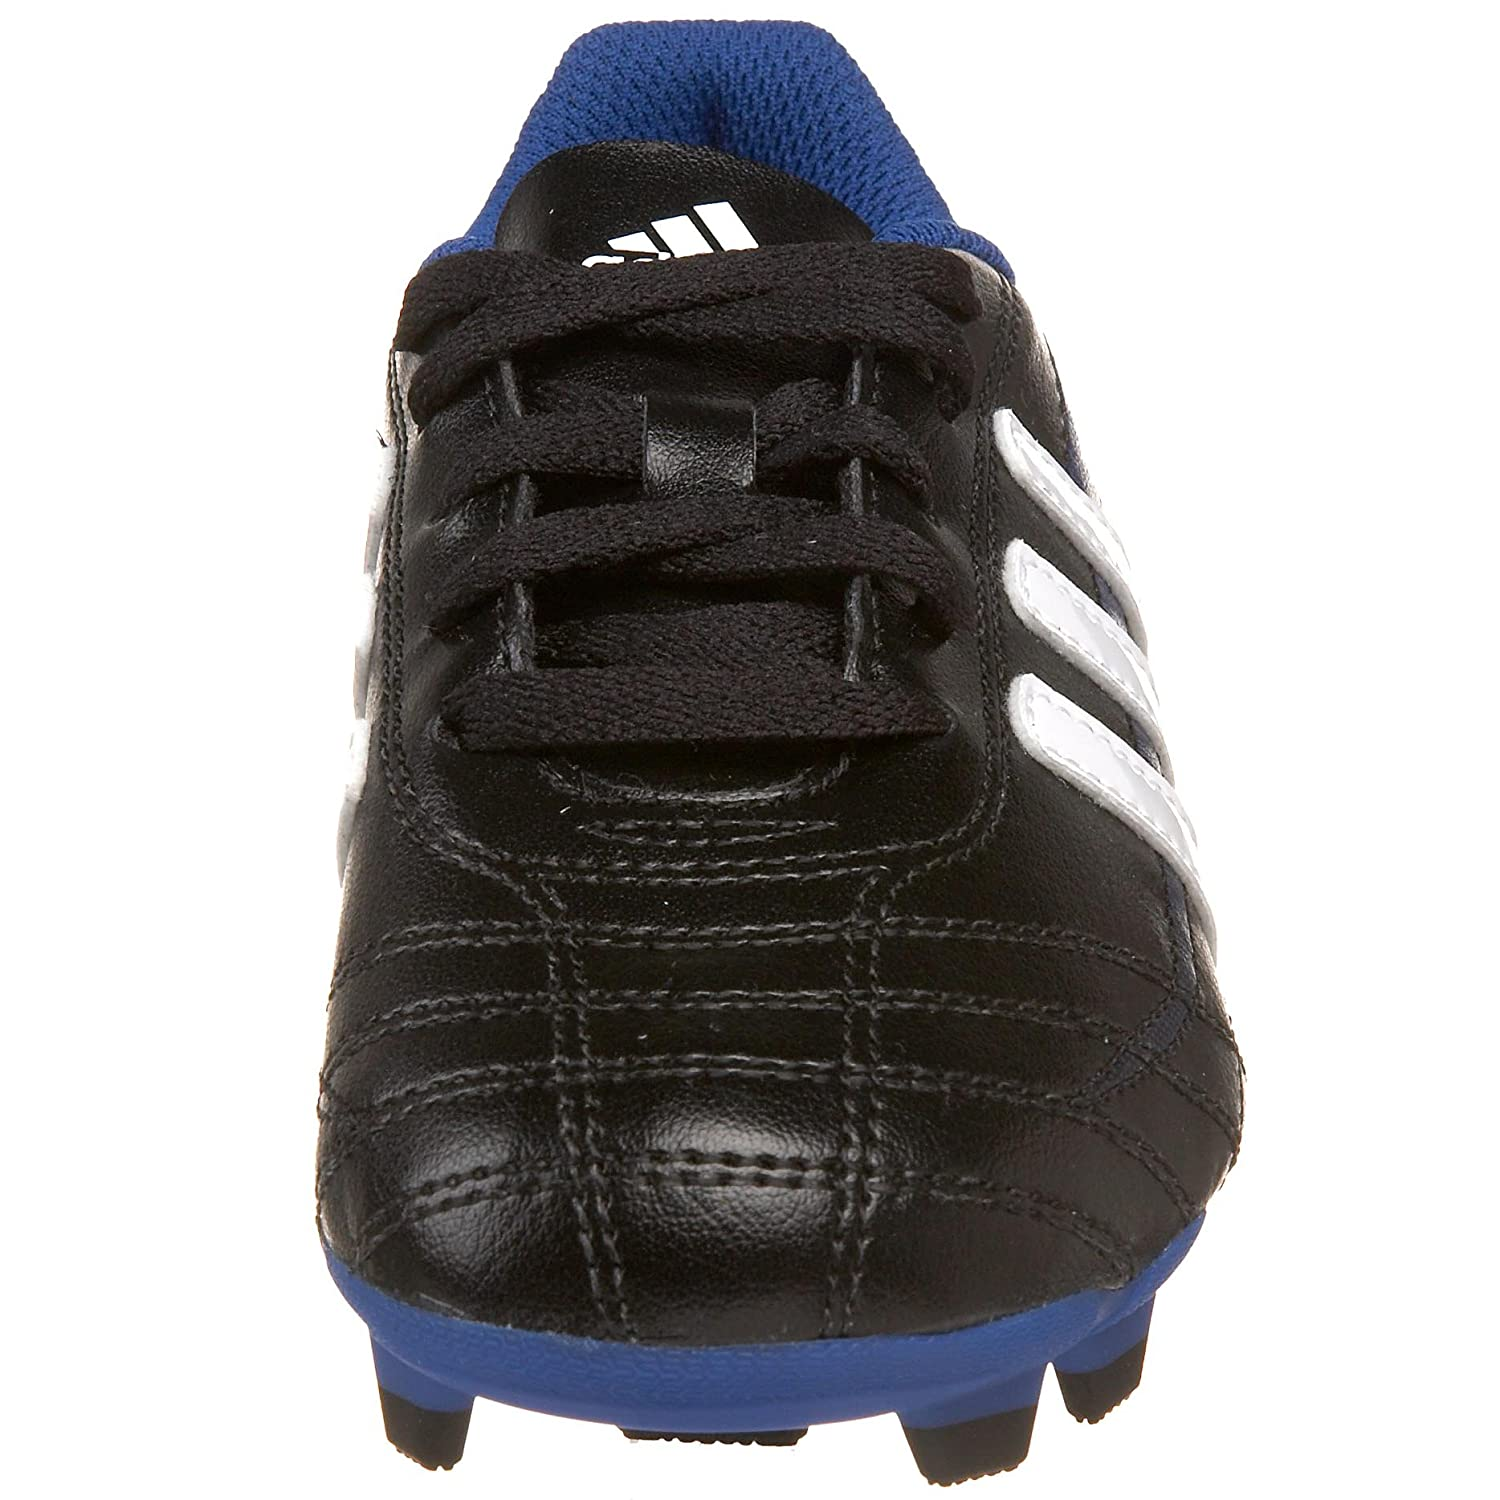 6b76e2371 adidas Little Kid Big Kid Ezeiro TRX FG Soccer Cleat Ezeiro TRX FGLK BK  Girls